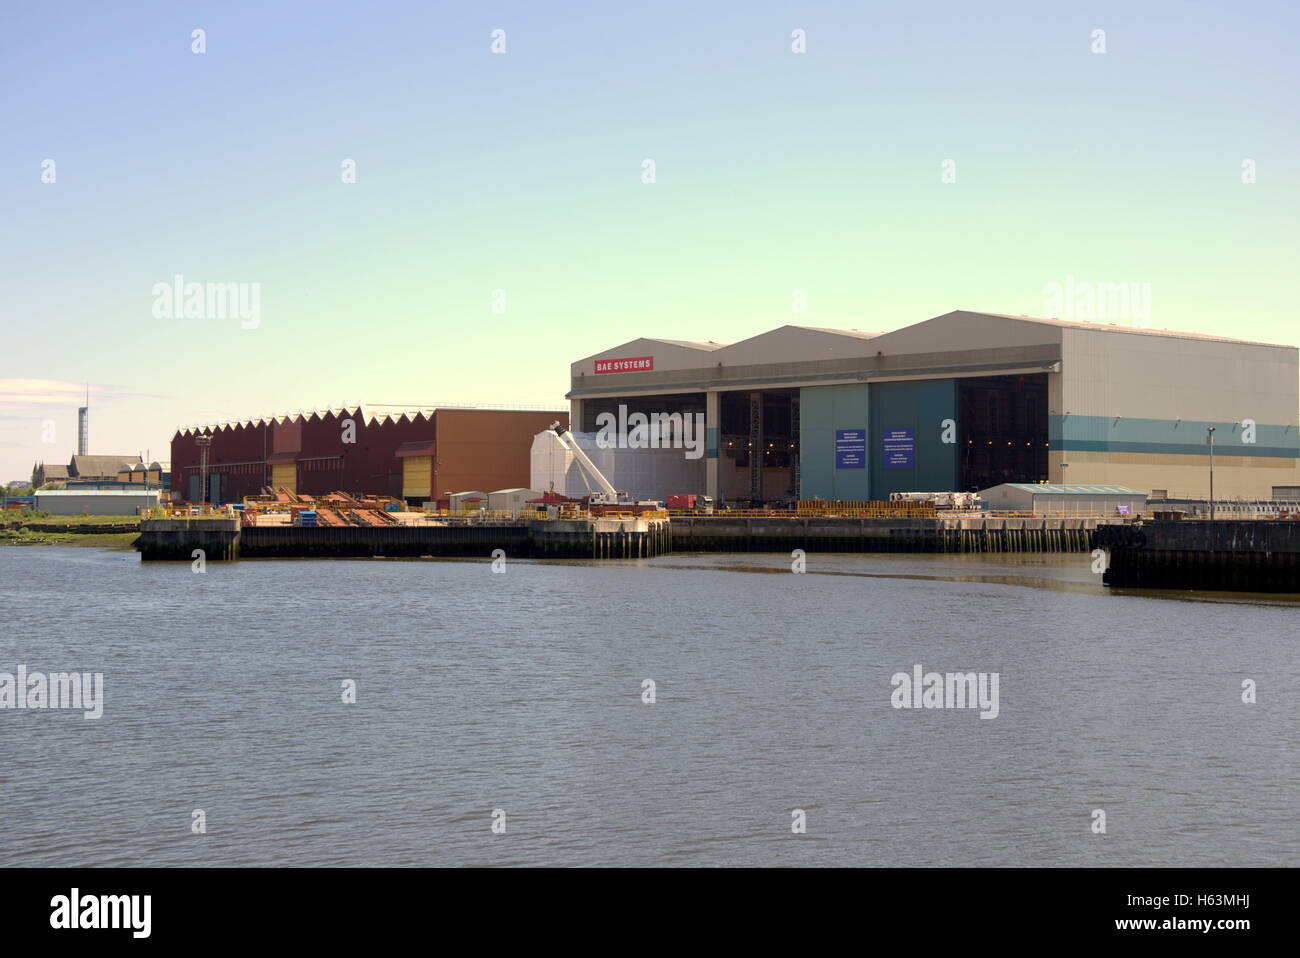 BAE Systems  Glasgow on the Clyde river in Govan and Yoker British defence arms company - Stock Image